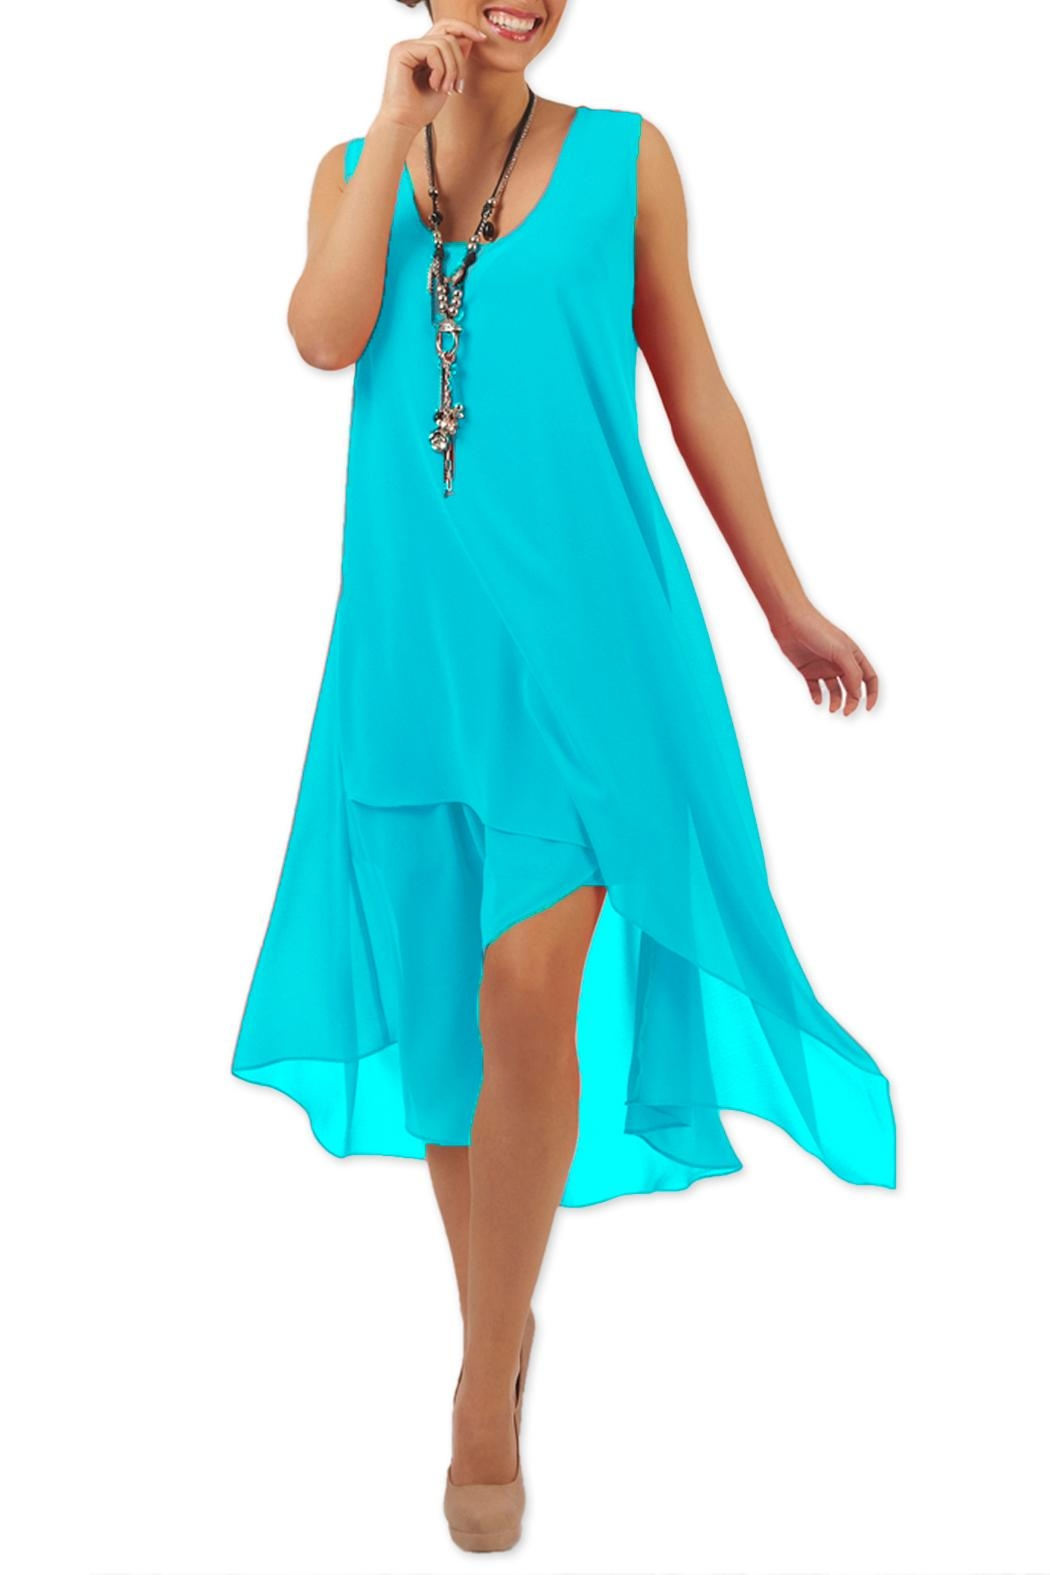 Yvonne Marie Turquoise Chiffon Dress - Front Cropped Image